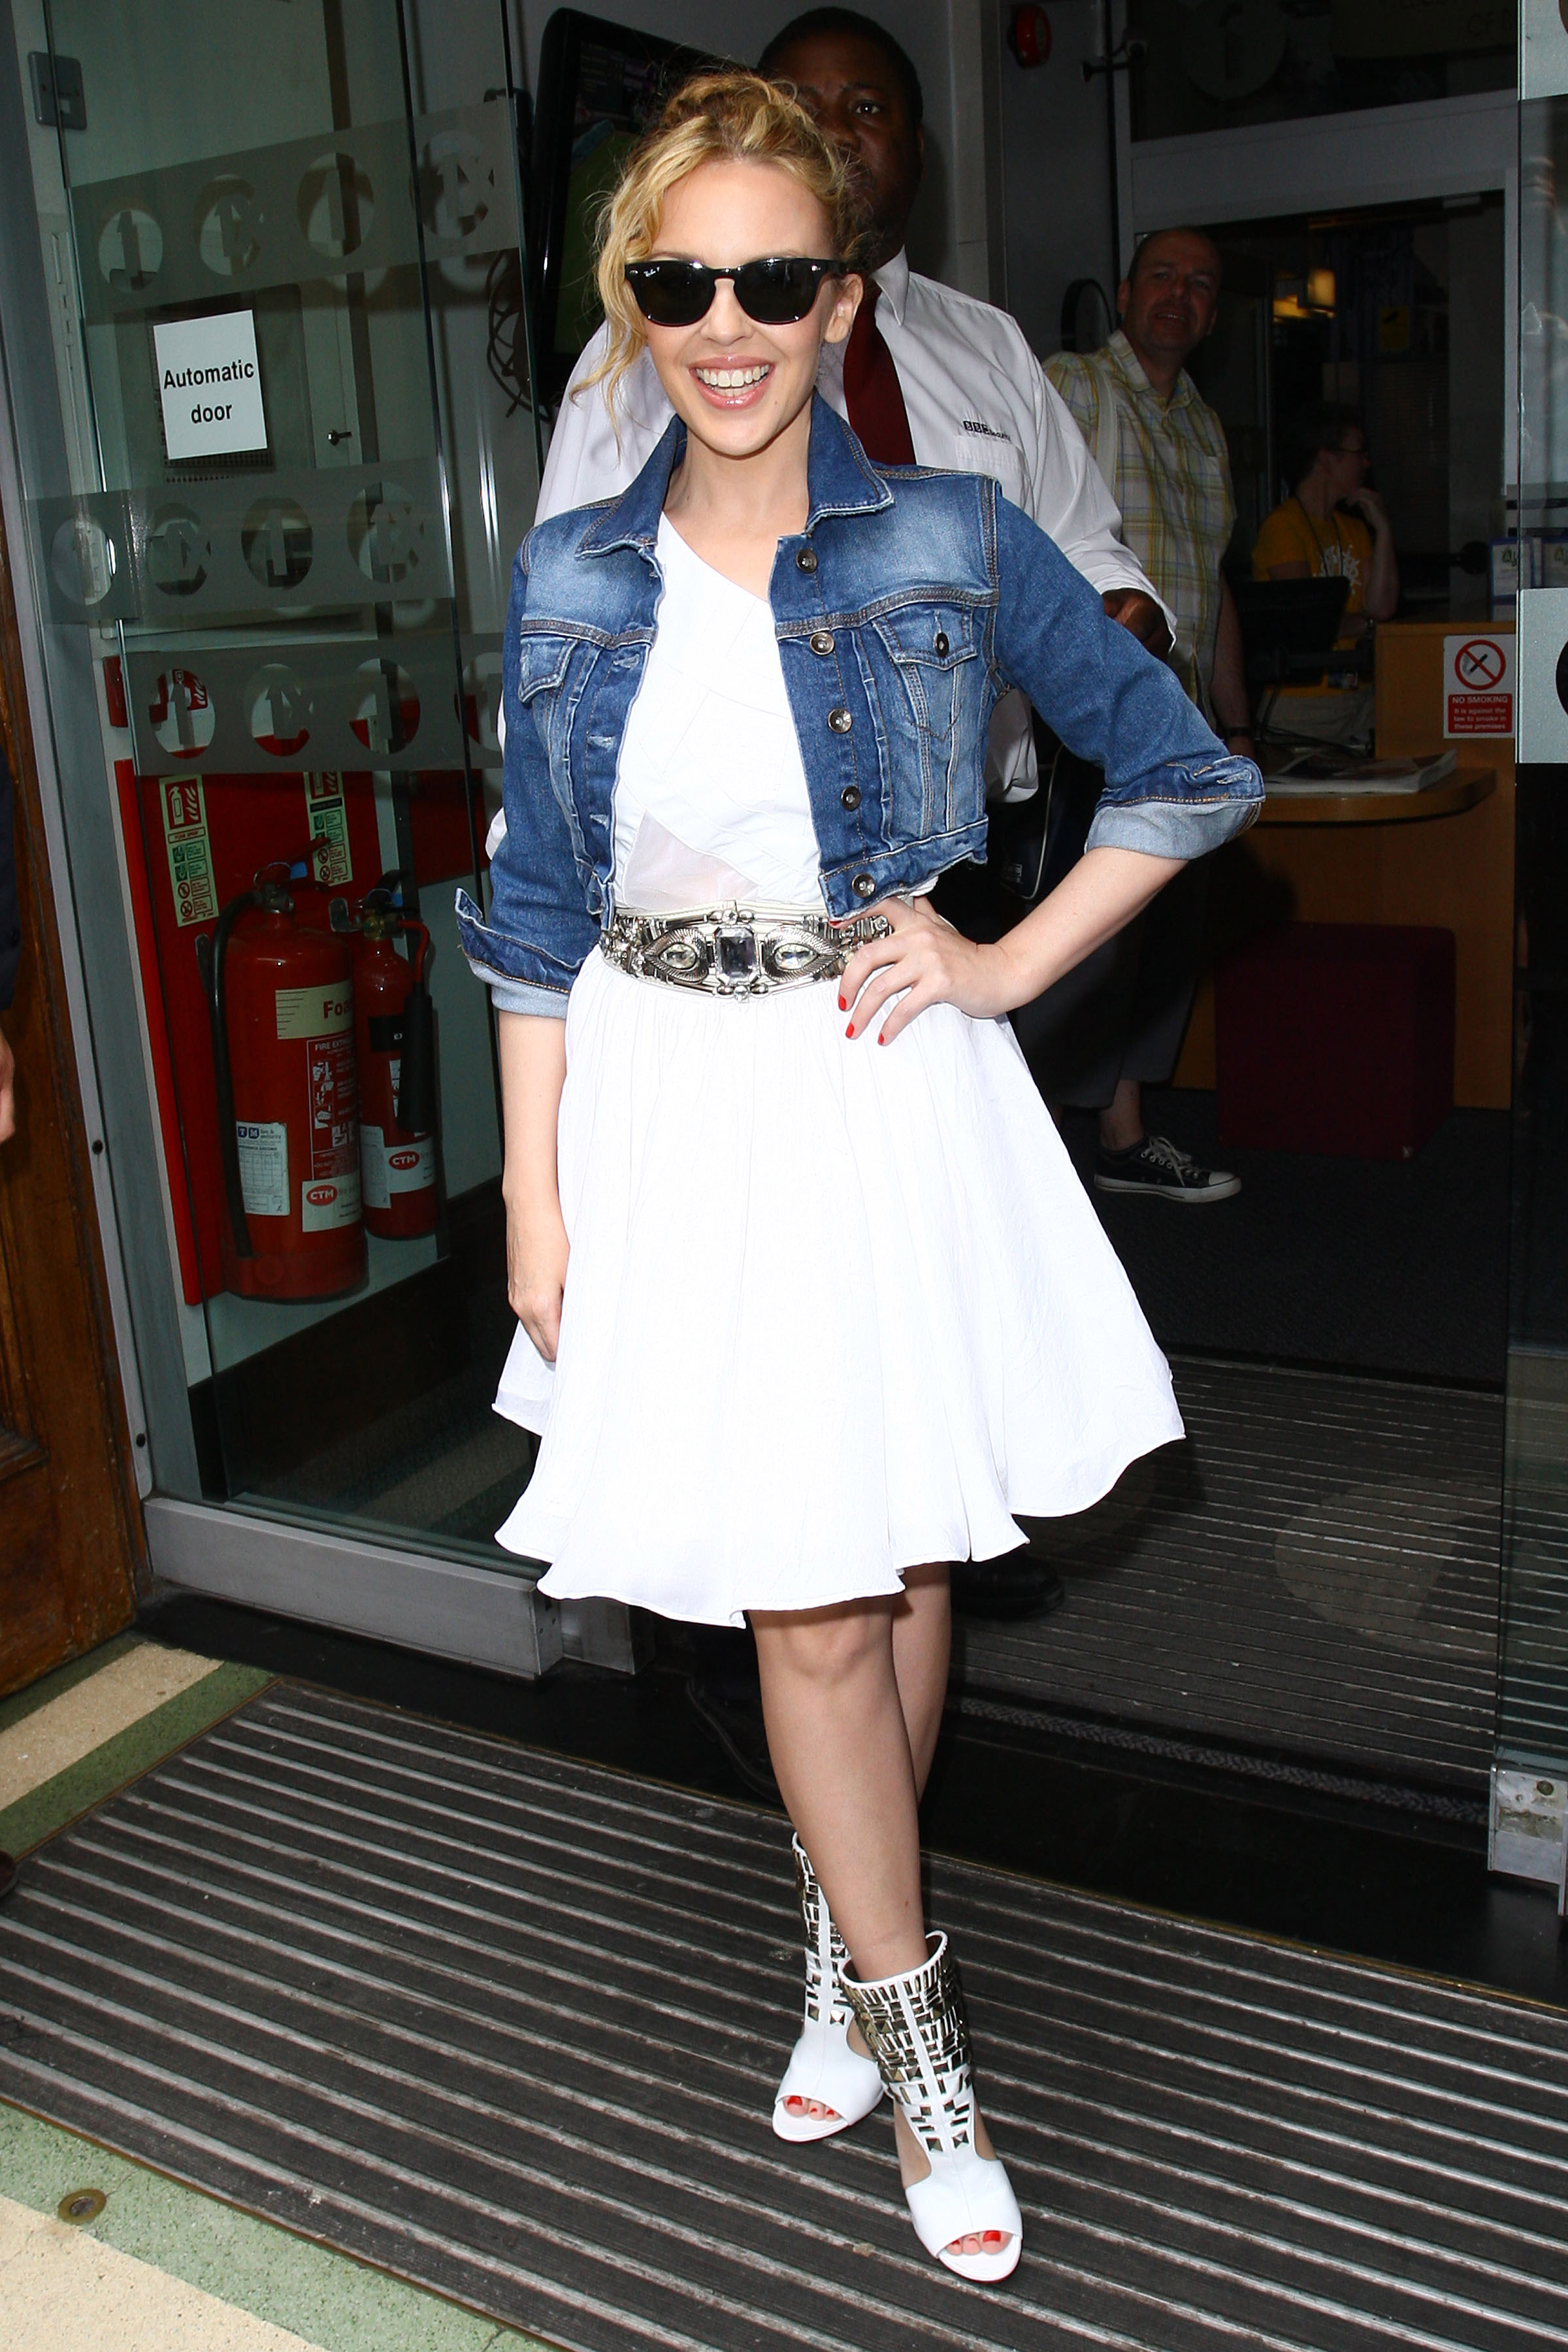 Photos Of Kylie Minogue In London Wearing A Topshop Denim